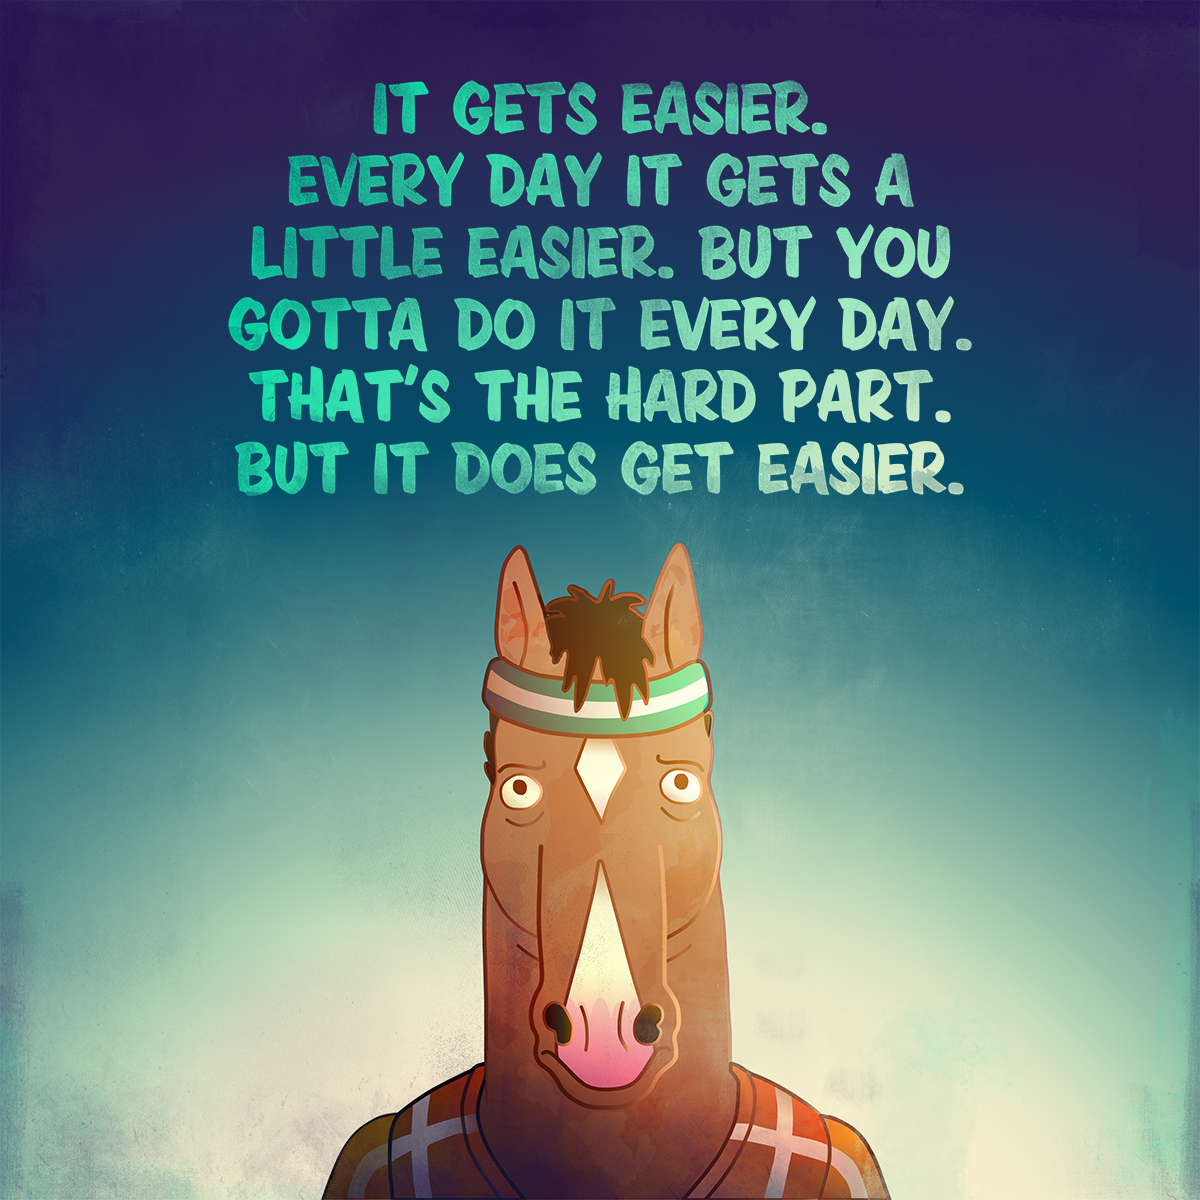 [Image] Perseverance is key!